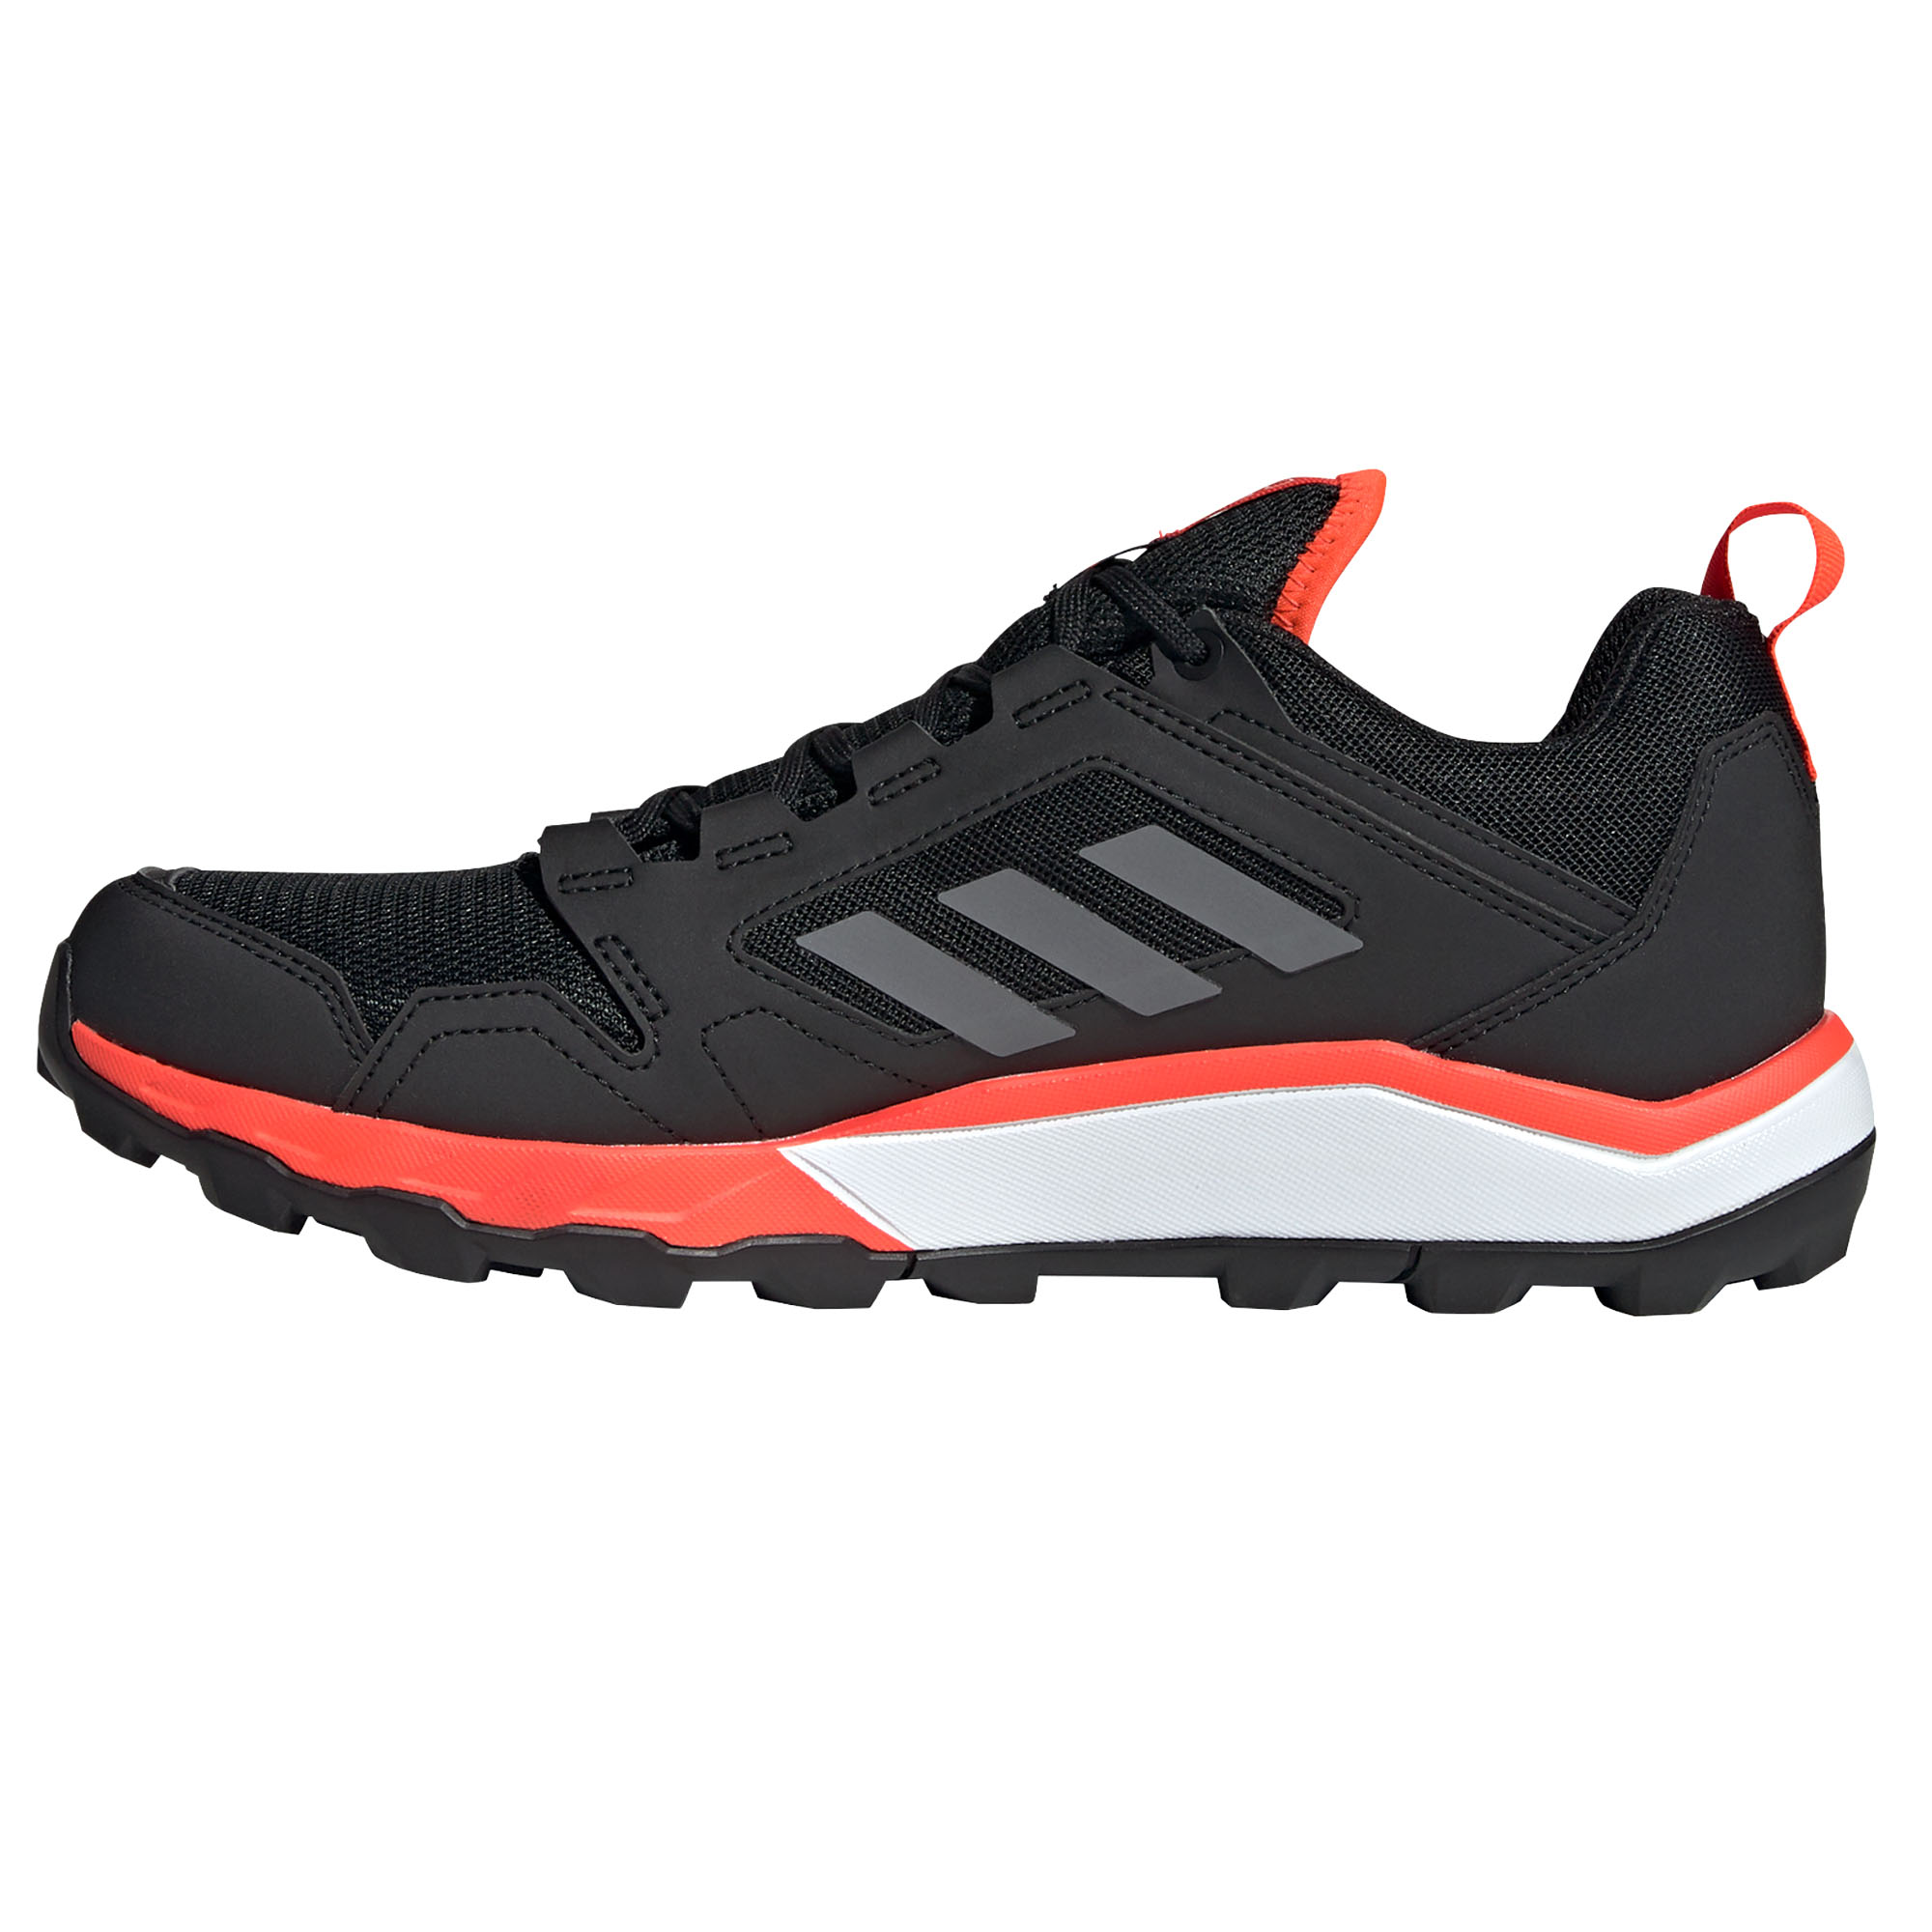 miniature 9 - Adidas-Terrex-en-apesanteur-GTX-Homme-Trail-Running-Trainer-Shoe-Black-Red